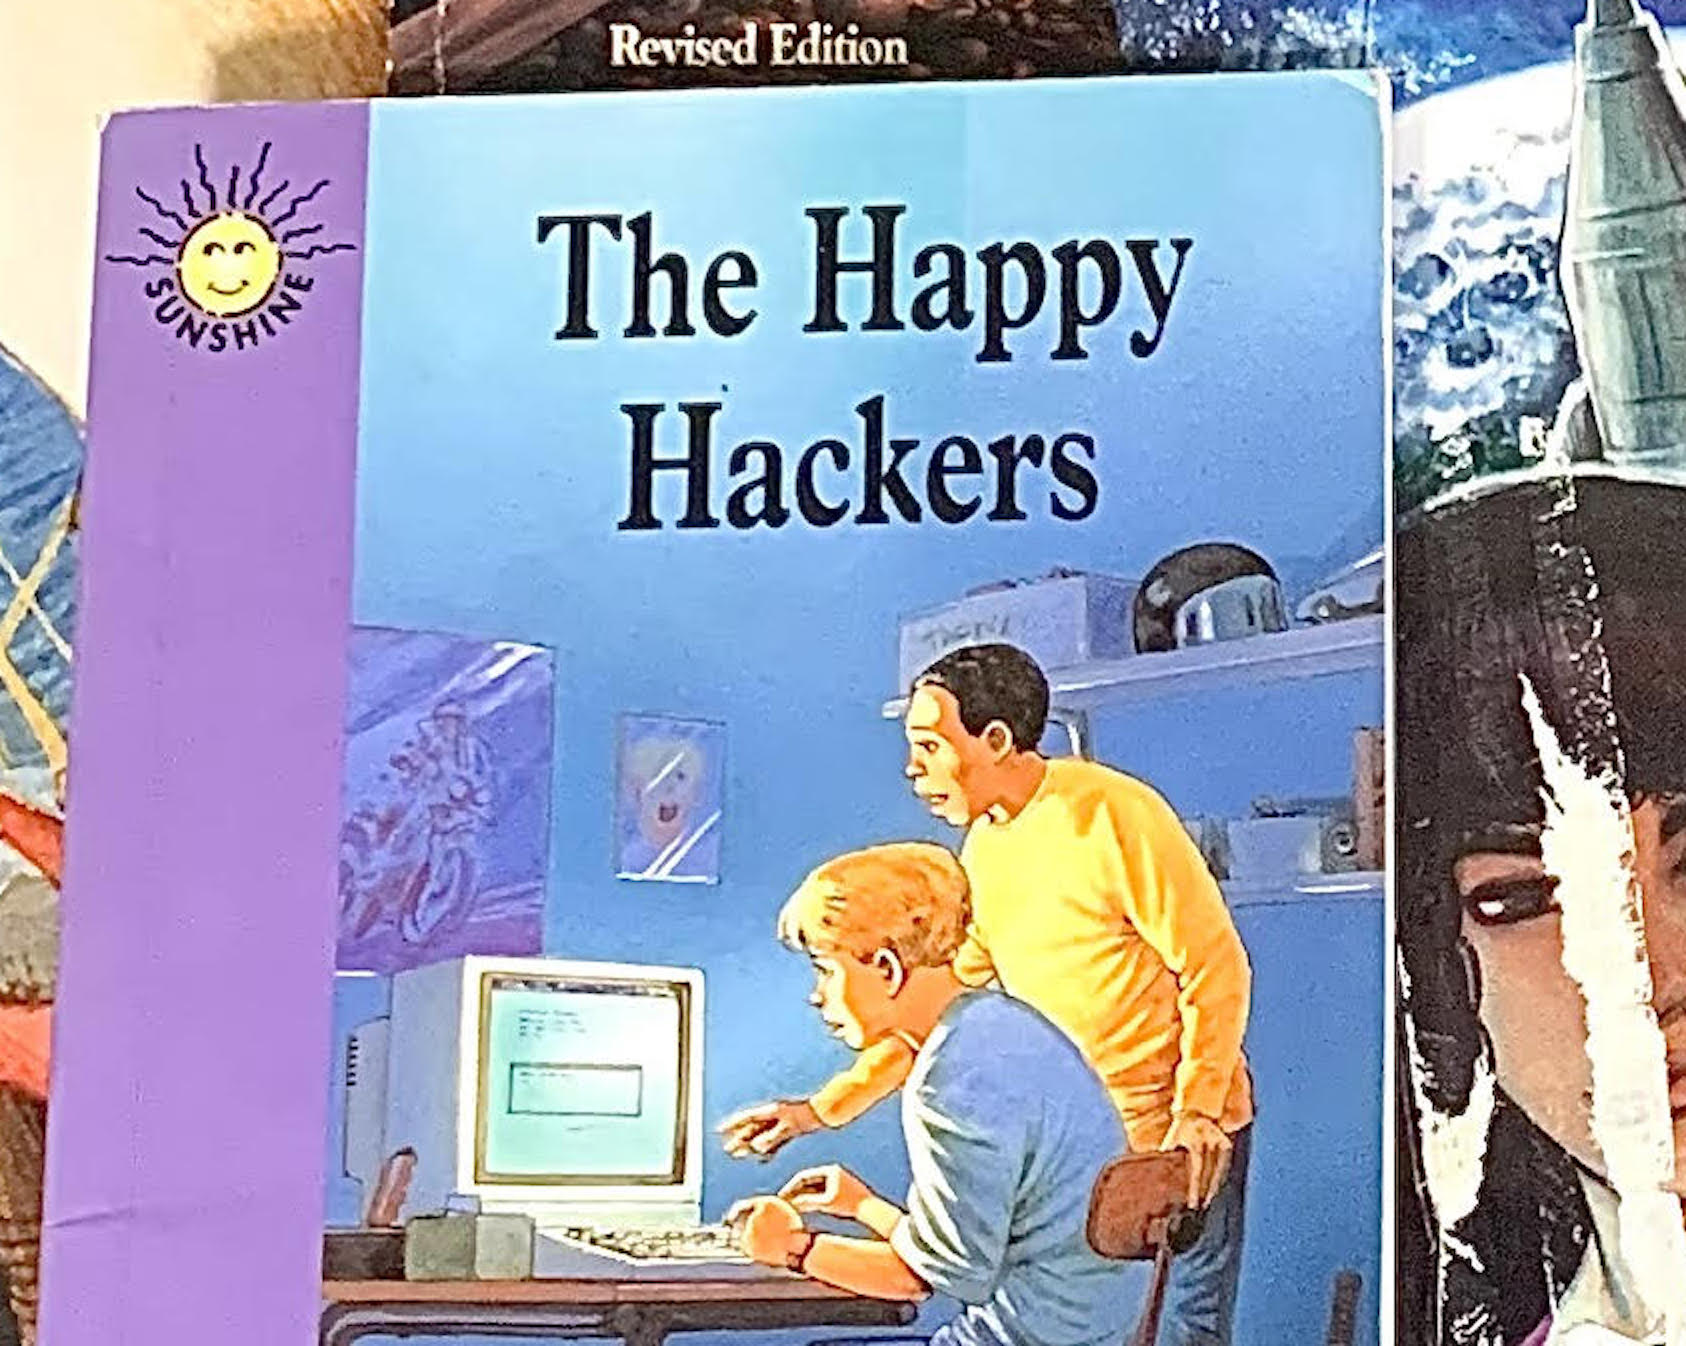 Close-up of The Happy Hackers.  The cover has a vertical violet bar on the left side, with a smiling yellow sun at the top and the word Sunshine curving around the bottom of the sun.  The rest of the cover is a blue-tinted room, as though it's late at night and all the lights except a computer screen are on.  There are two boys staring at an old desktop computer screen, and a scruffy dog staring up at the boys.